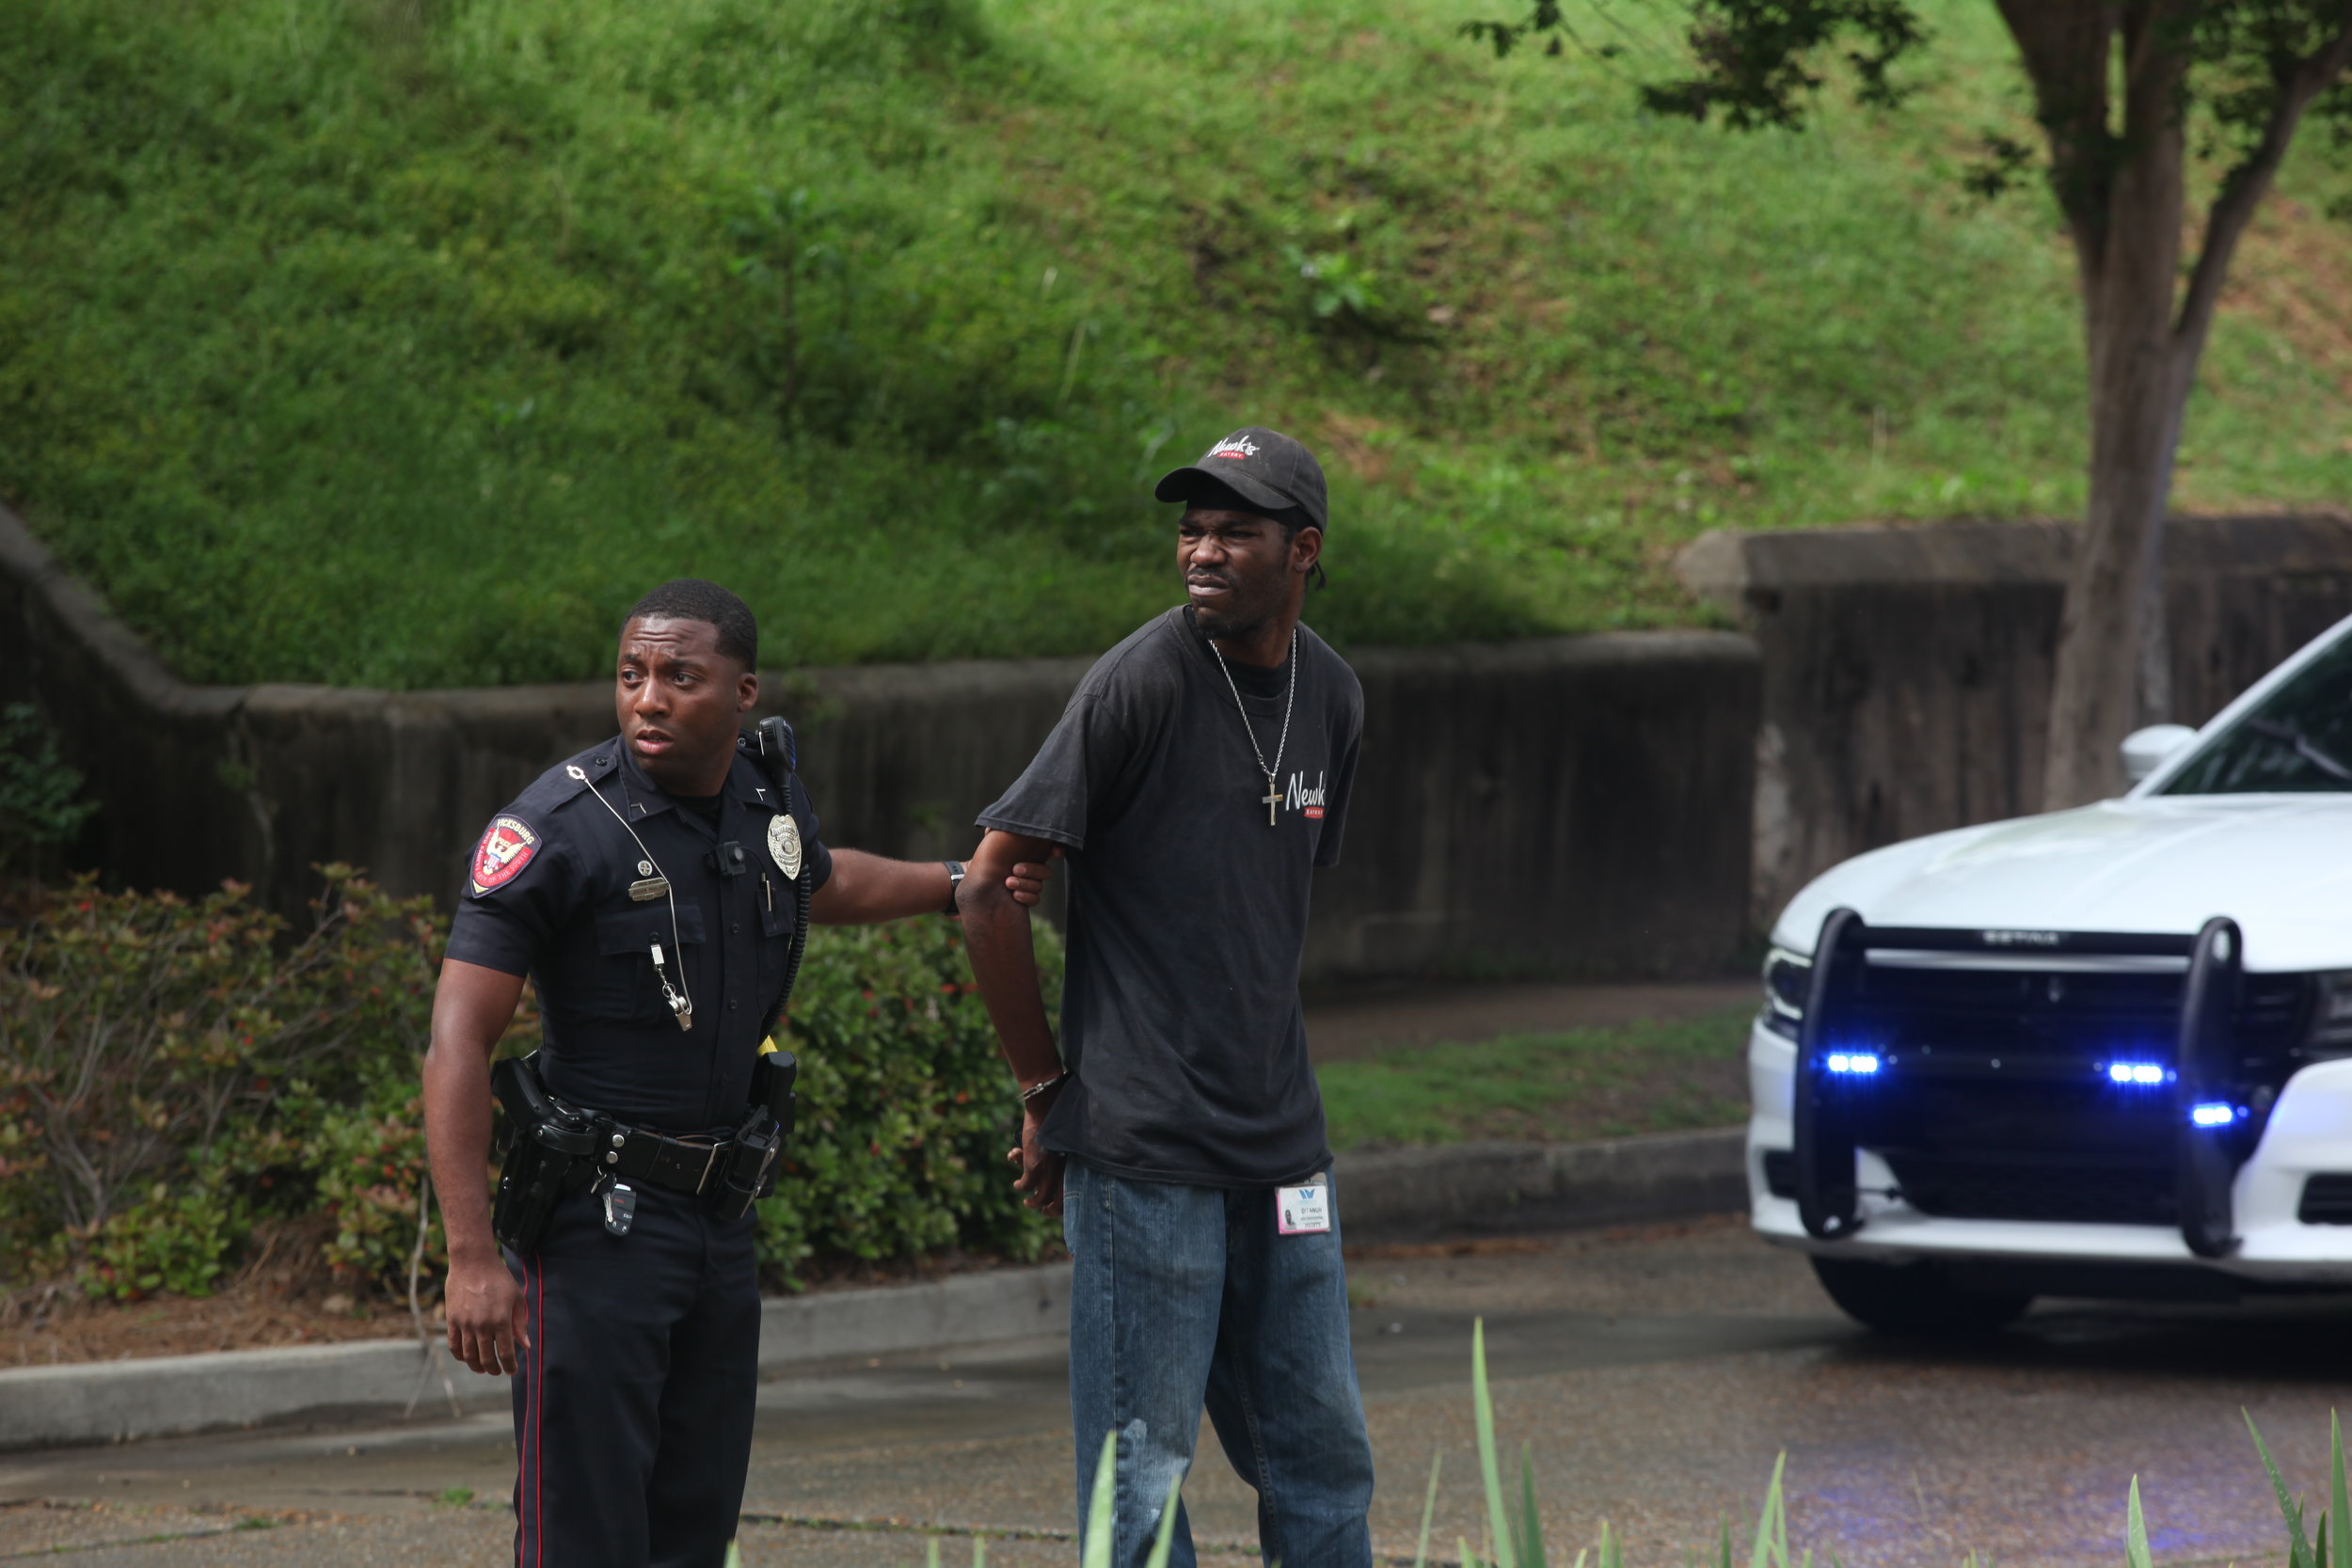 Vicksburg Police Officer Judson Magloire takes Ditanun Demon Simpson, 30, into custody after he allegedly struck a nine-year-old 2nd-grade Dana Road Elementary student with a vehicle after she exited a school bus in front of Vicksburg Fire Department Station 7 located at 3217  Washington Street just around 3:10 p.m. in Vicksburg, Miss., Wednesday, March 28, 2018. The victim was transported to Merit Health River Region with unknown injuries. Simpson is currently charged with reckless driving, no operators license and no proof of insurance (Courtland Wells/The Vicksburg Post, via AP)